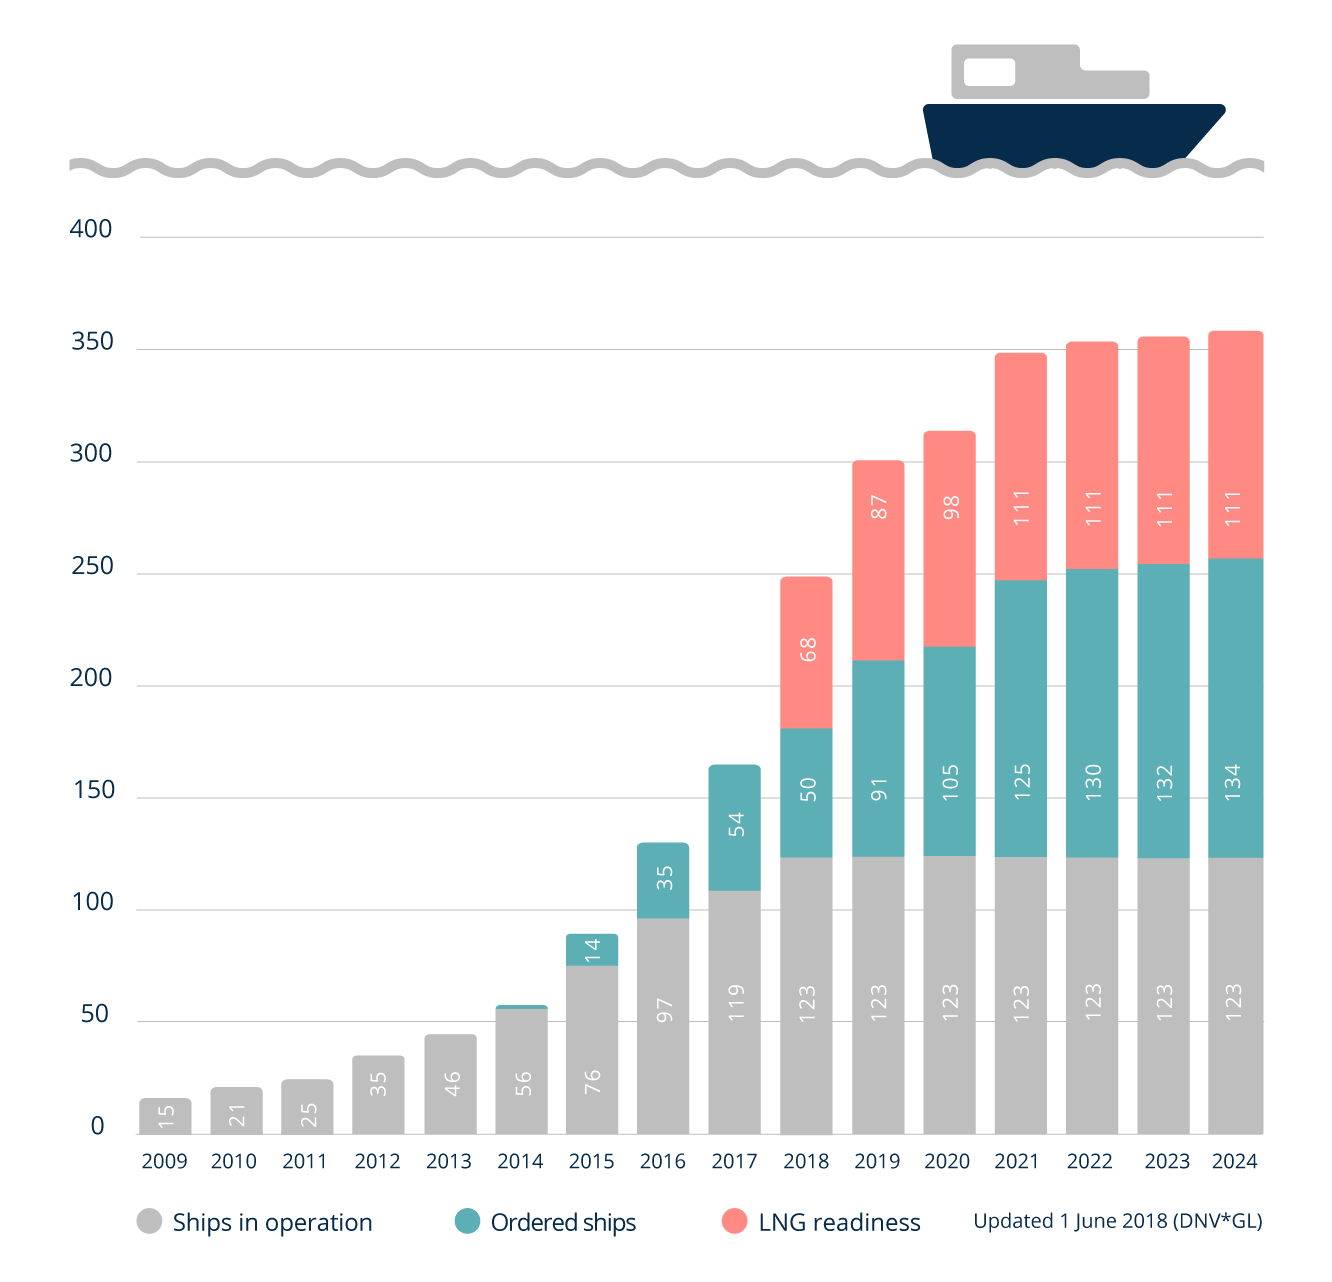 The number of LNG ships